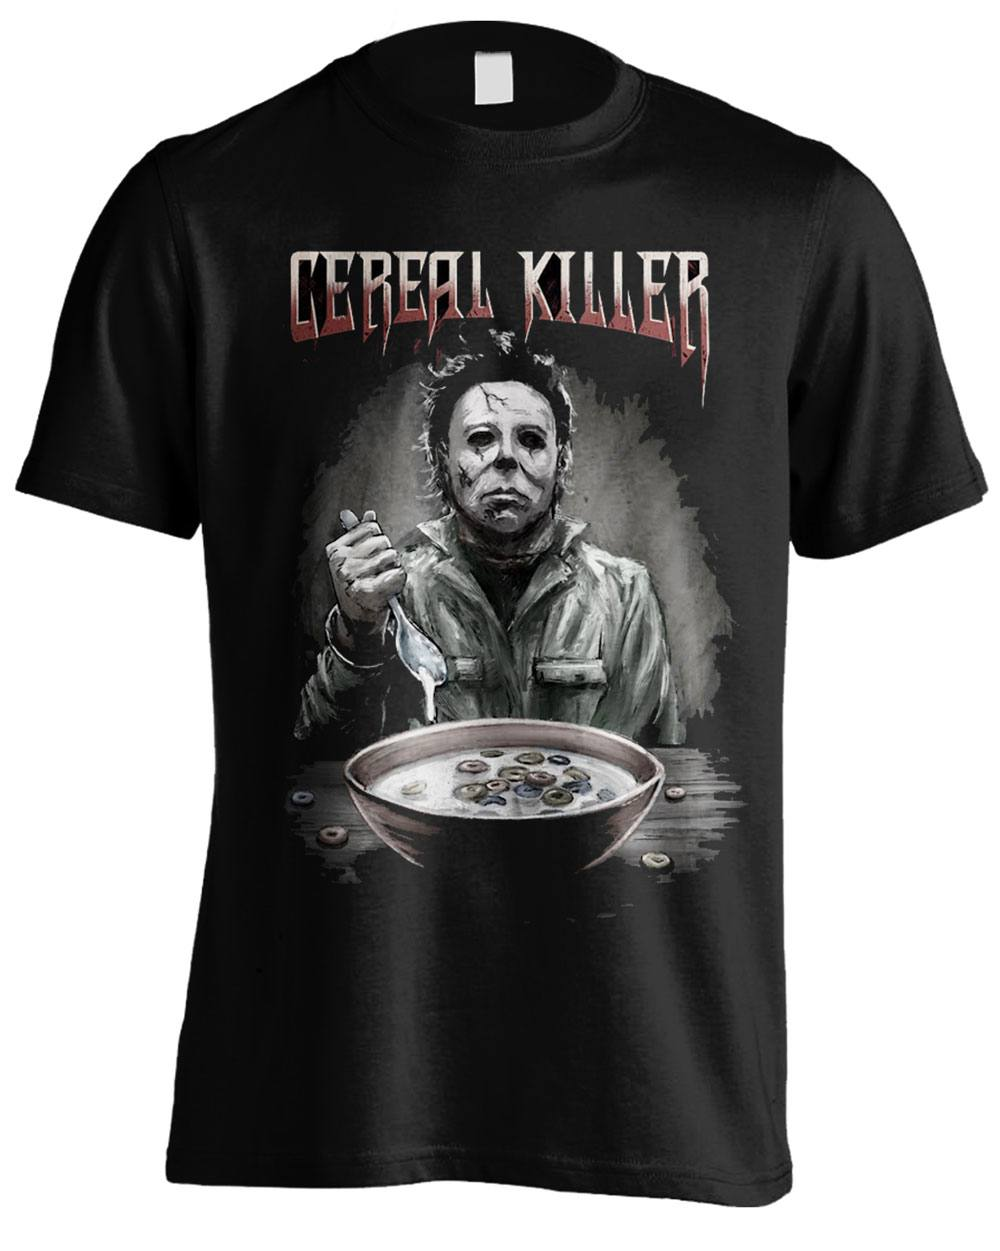 Halloween T-Shirt Cereal Killer Size M